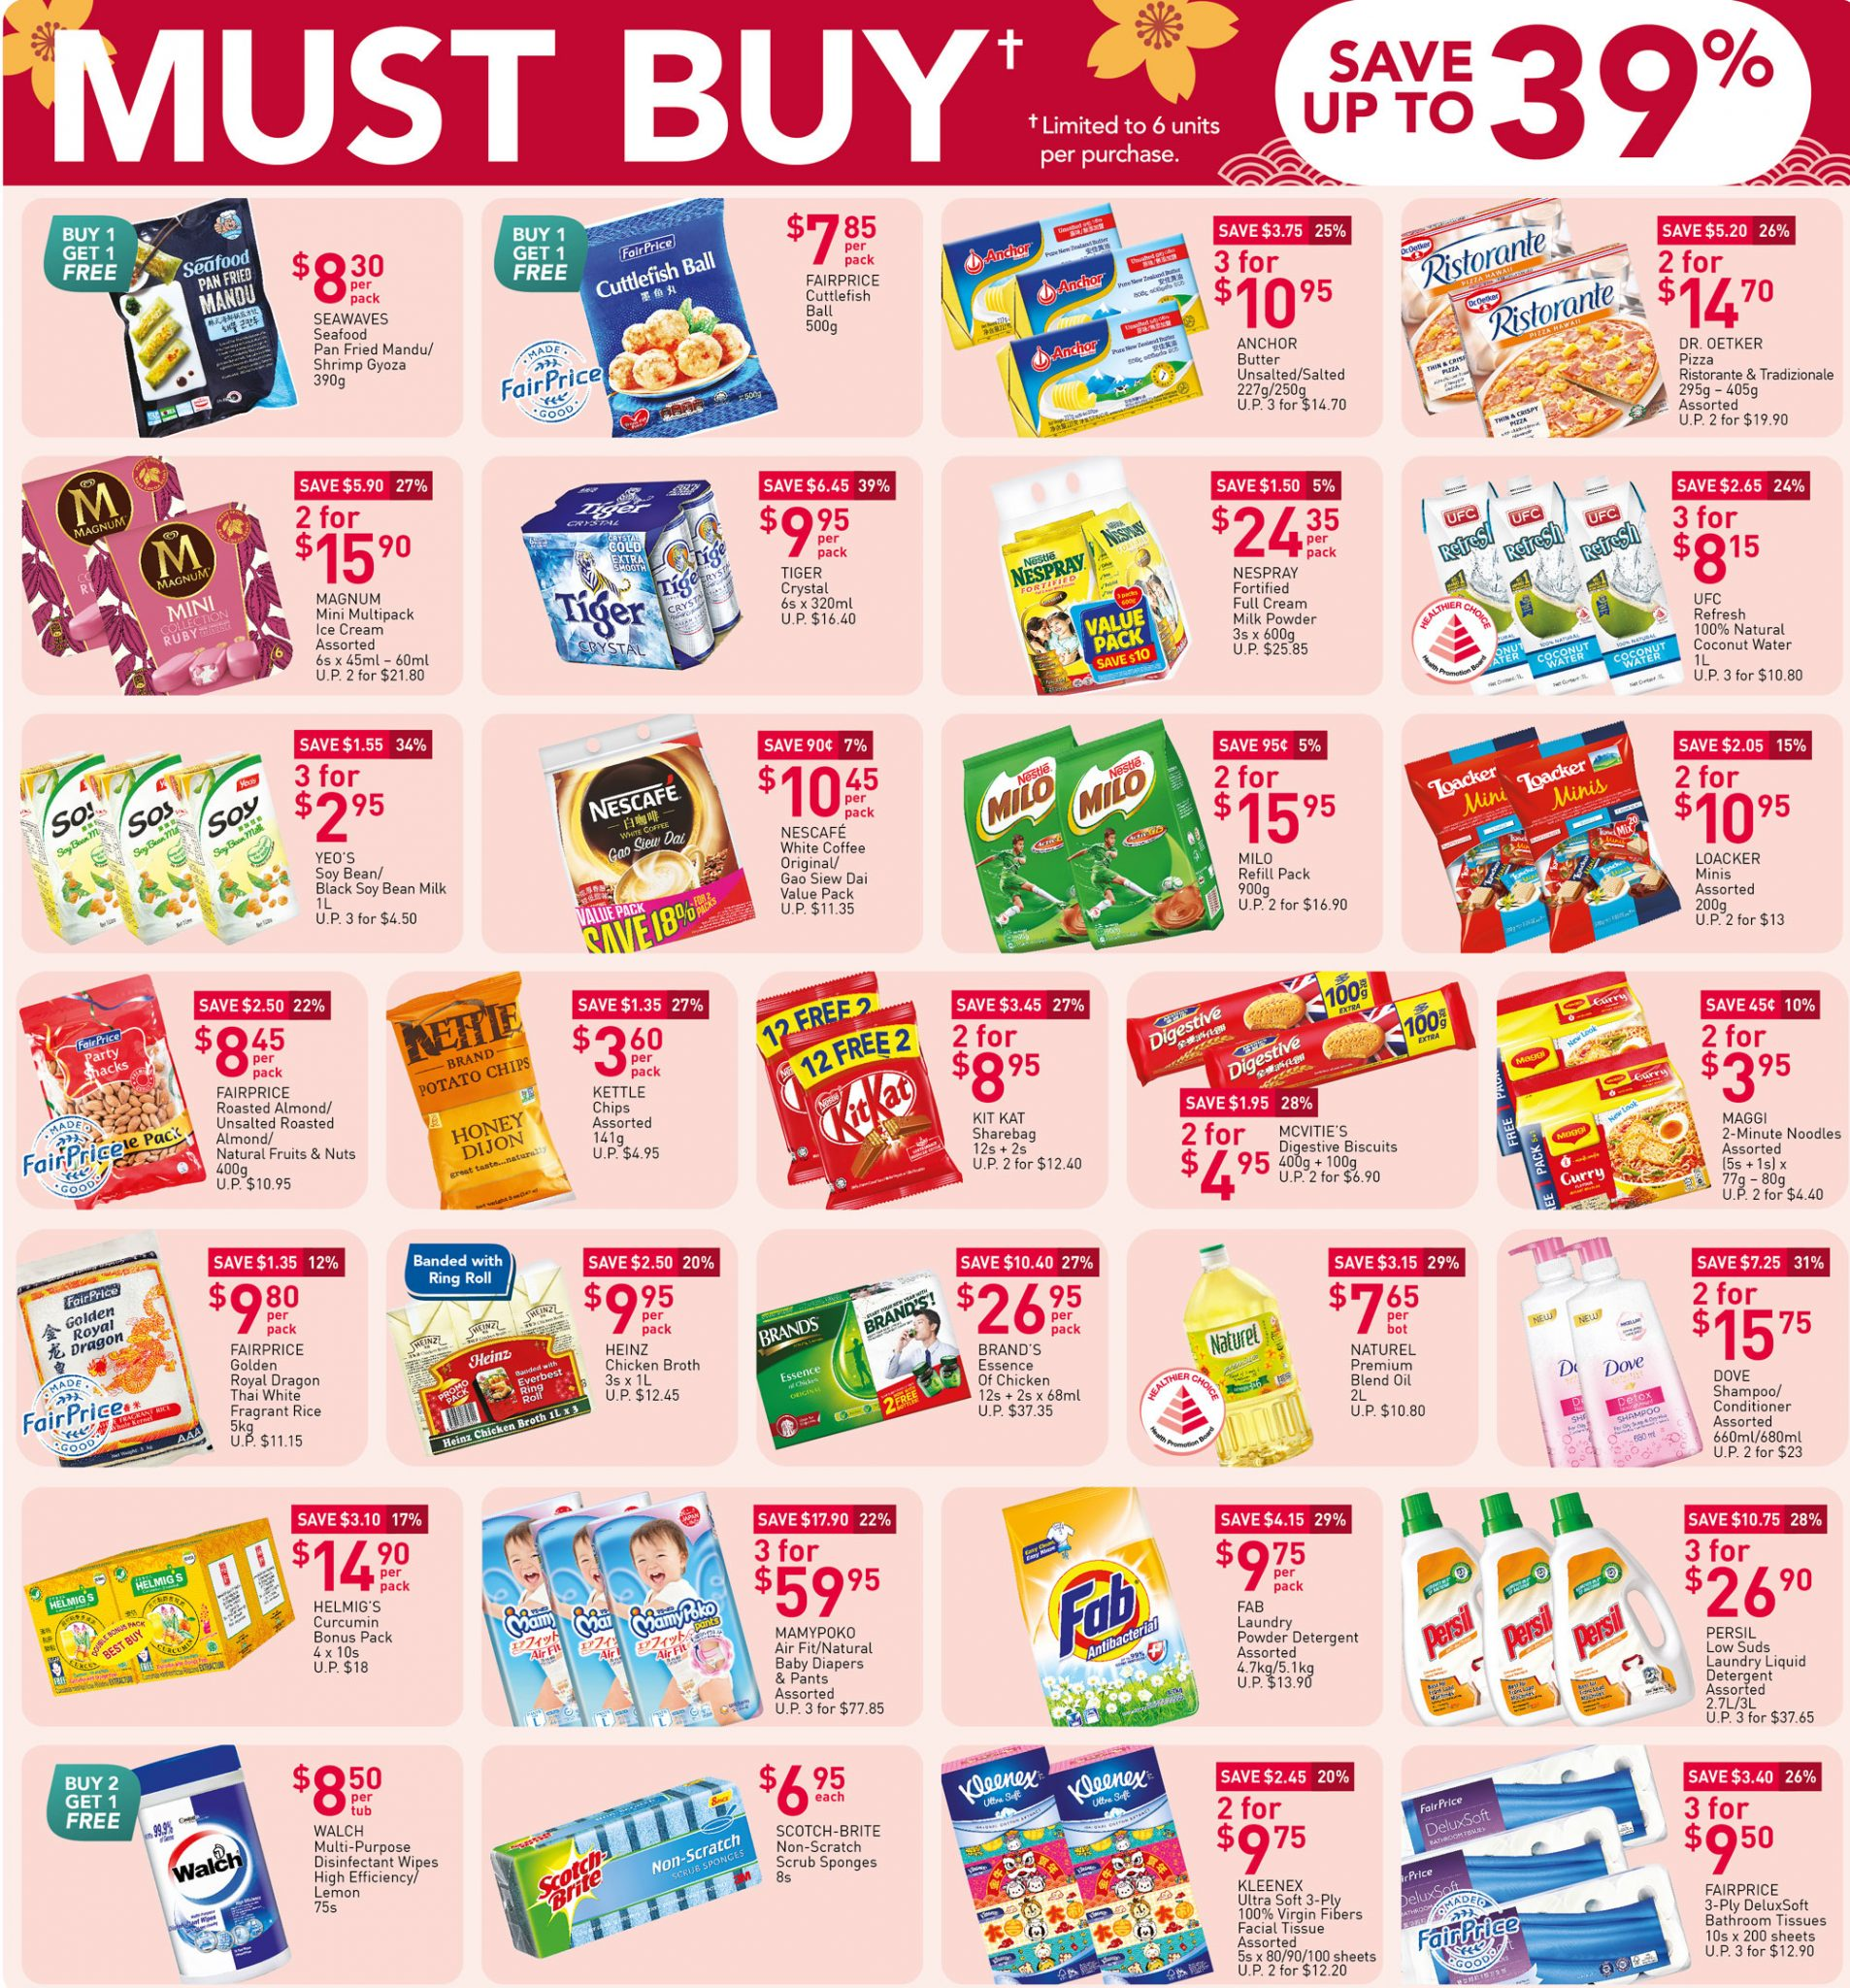 Must-buy items from now till 13 January 2021